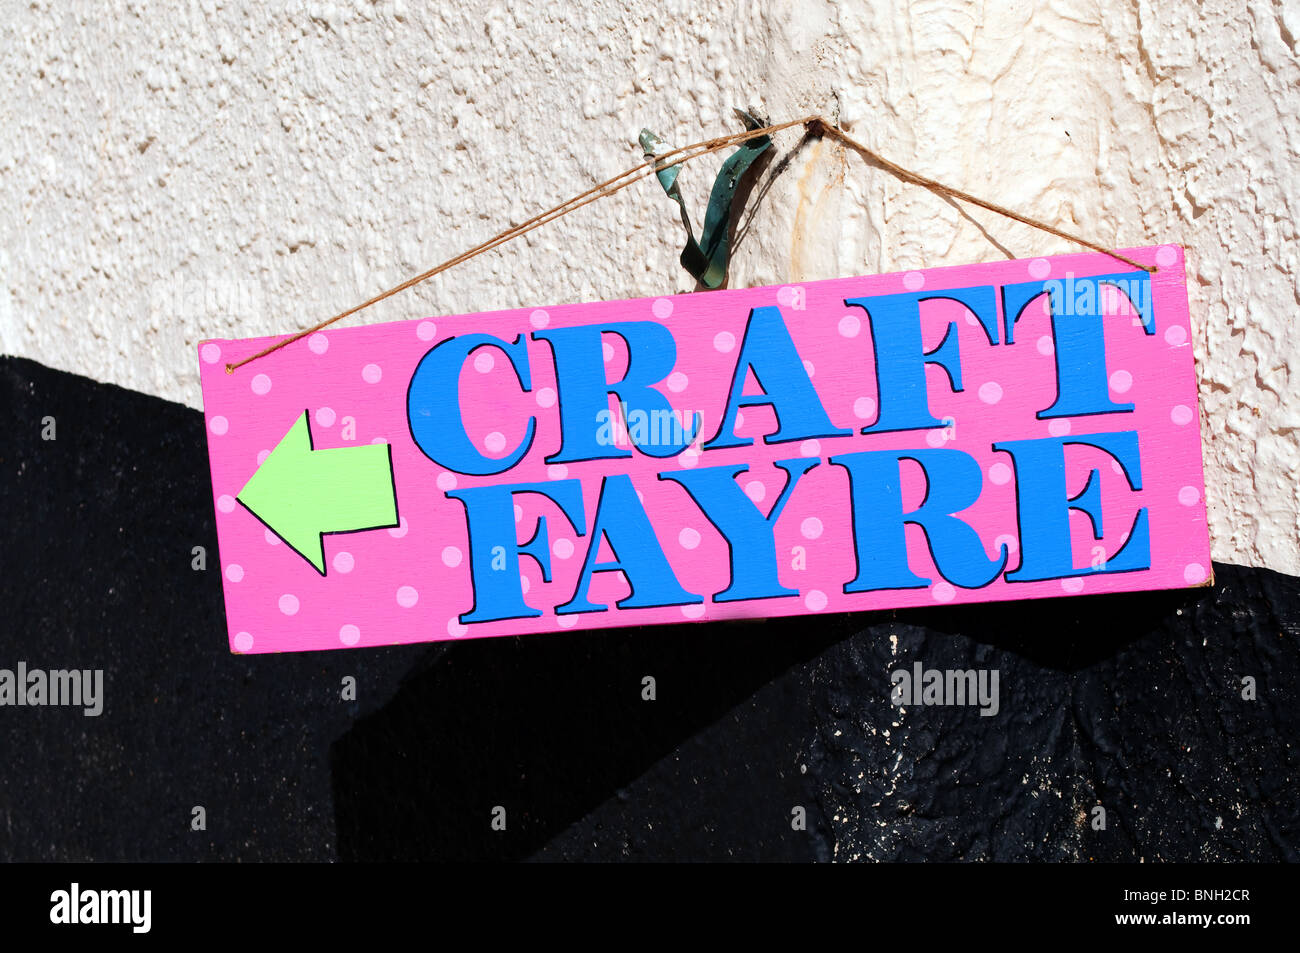 Un art fayre sign Photo Stock